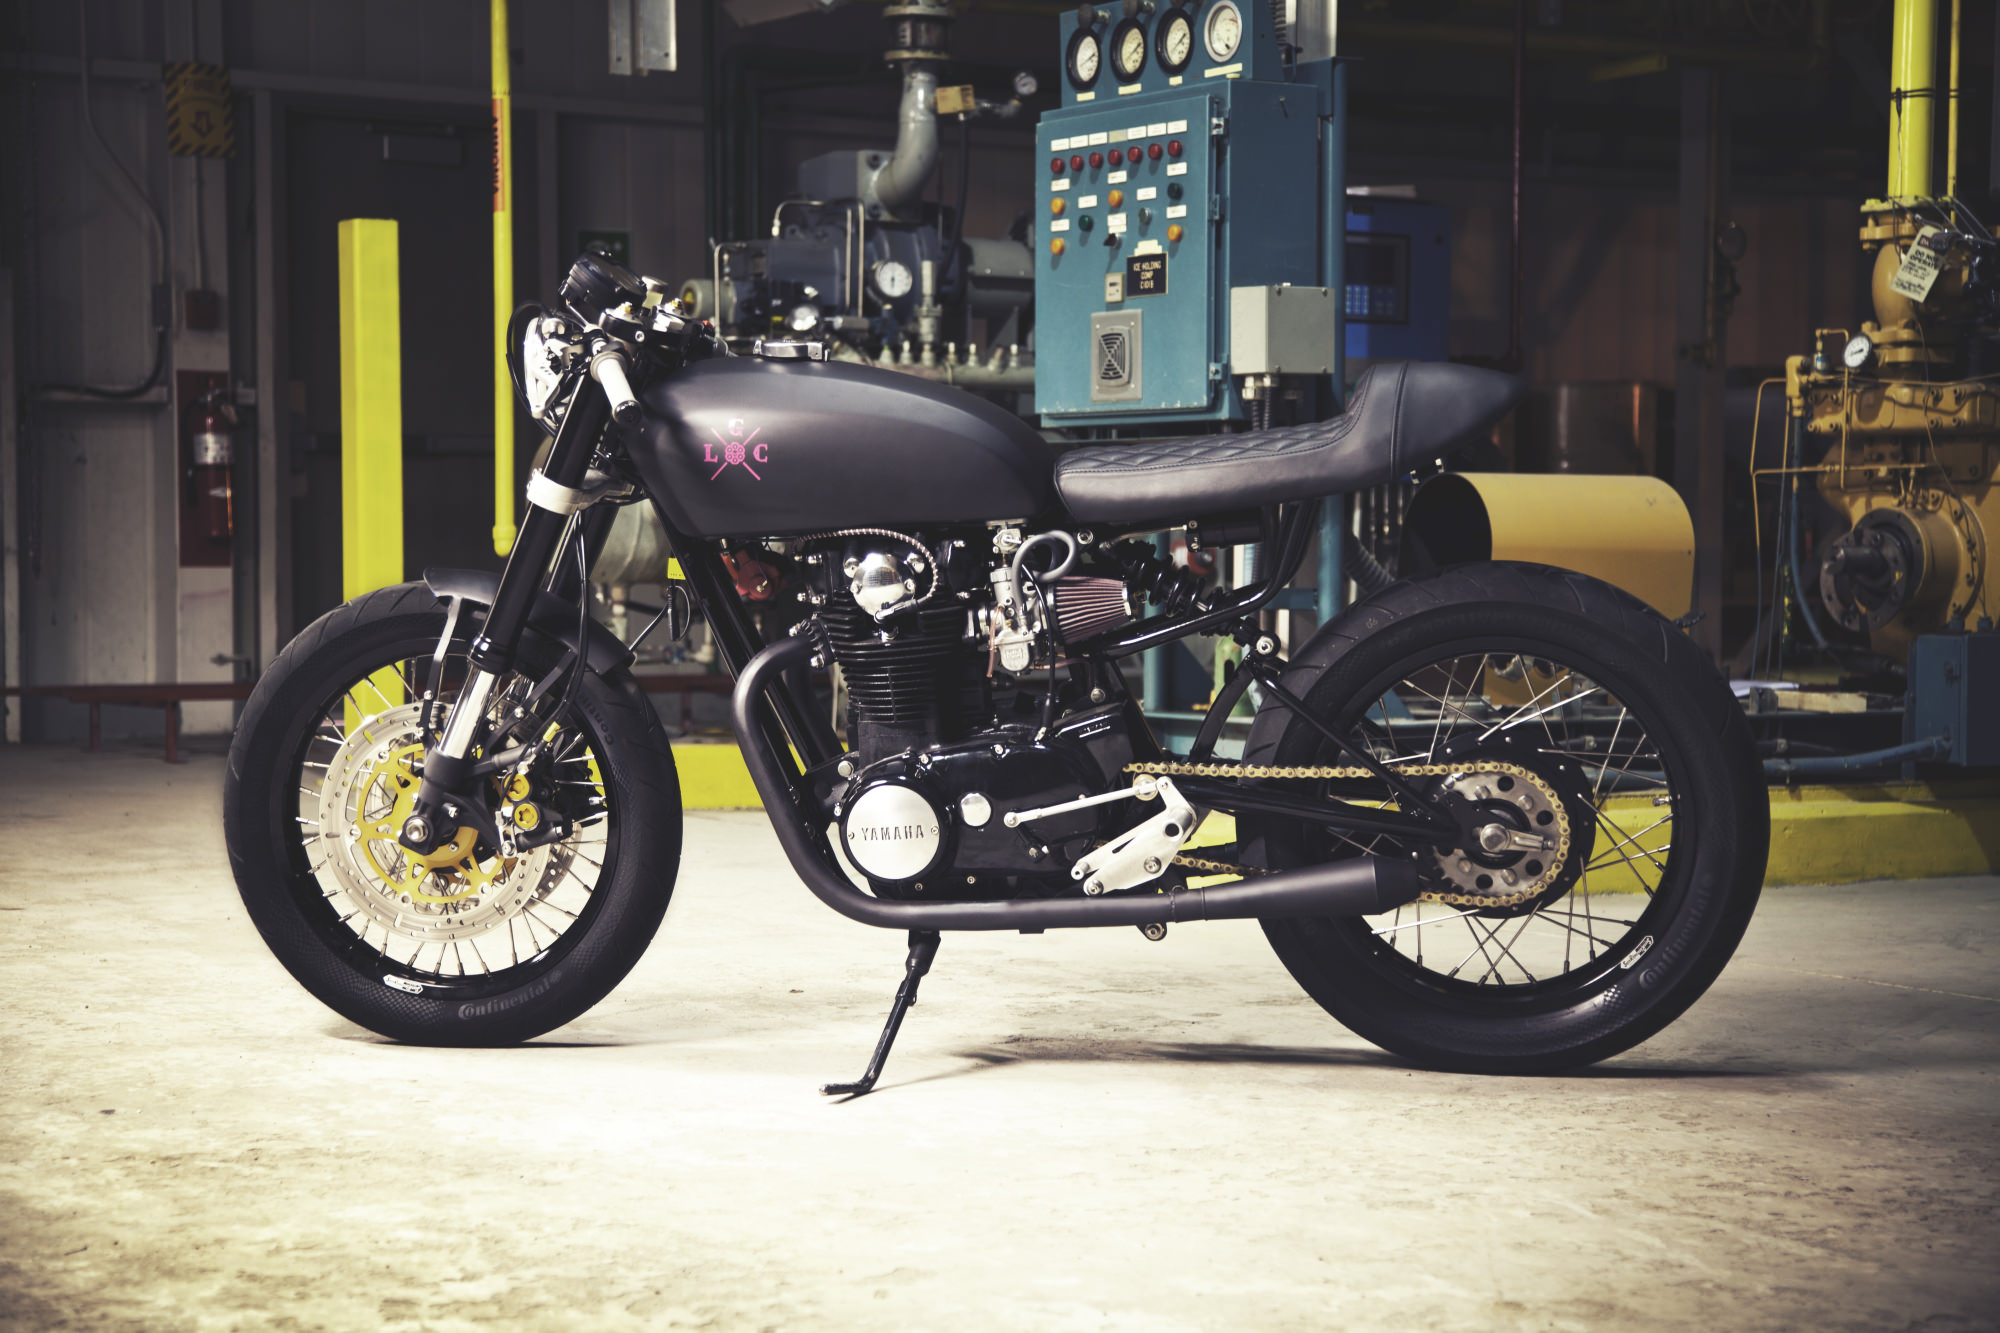 Hondas For Sale >> Kaillie's XS650 by Loaded Gun Customs